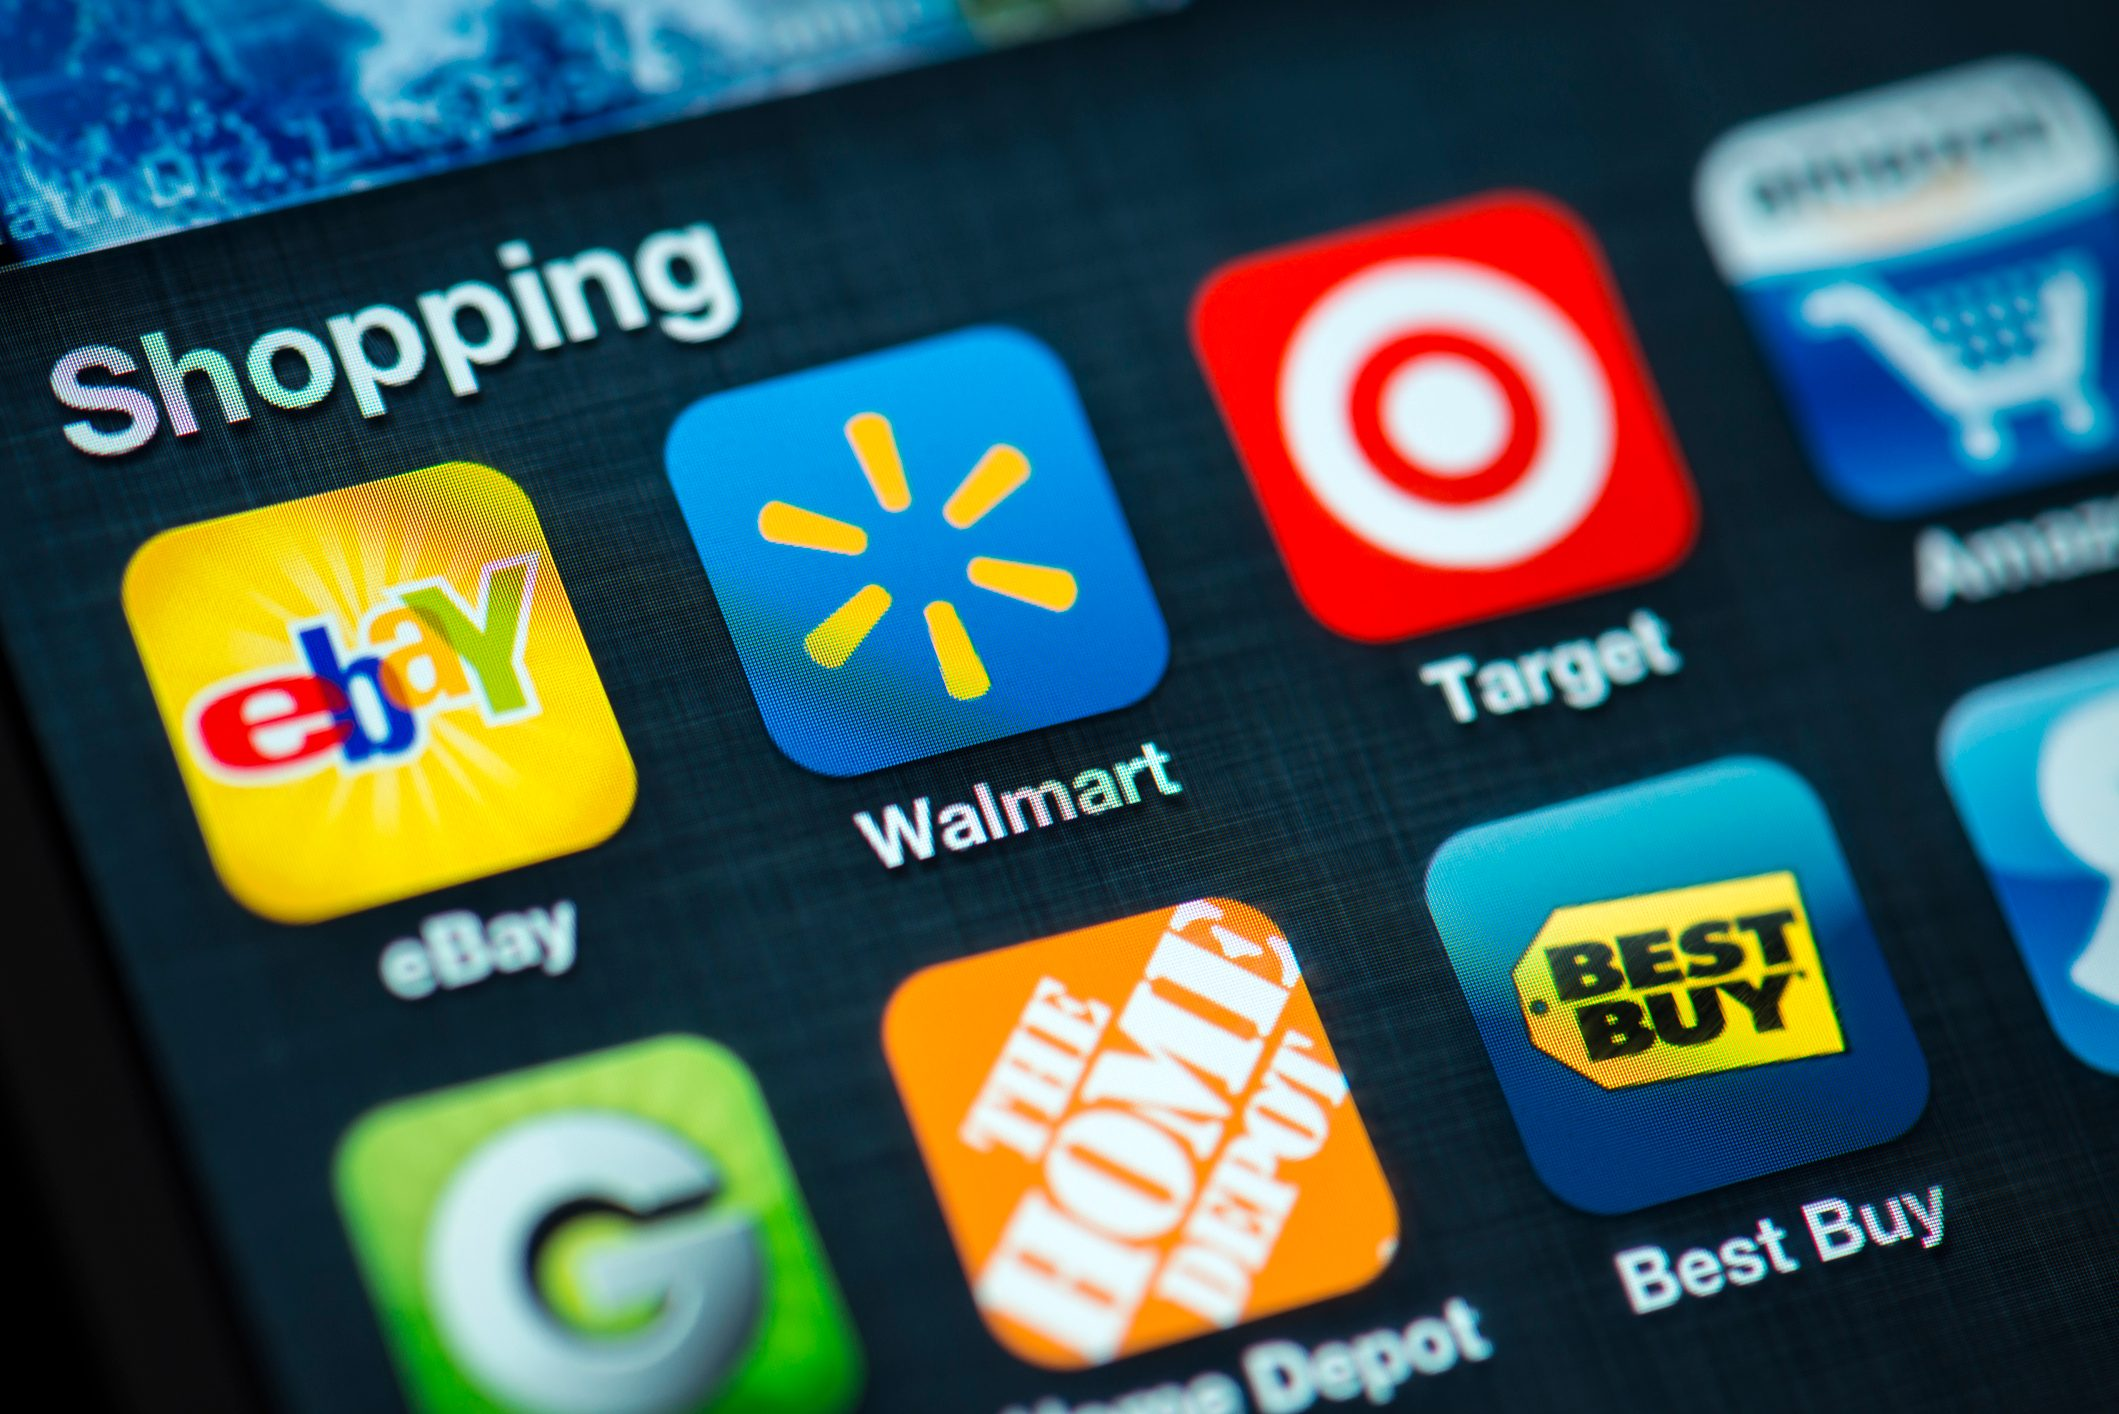 Shopping Apps on Apple iPhone 4s Screen